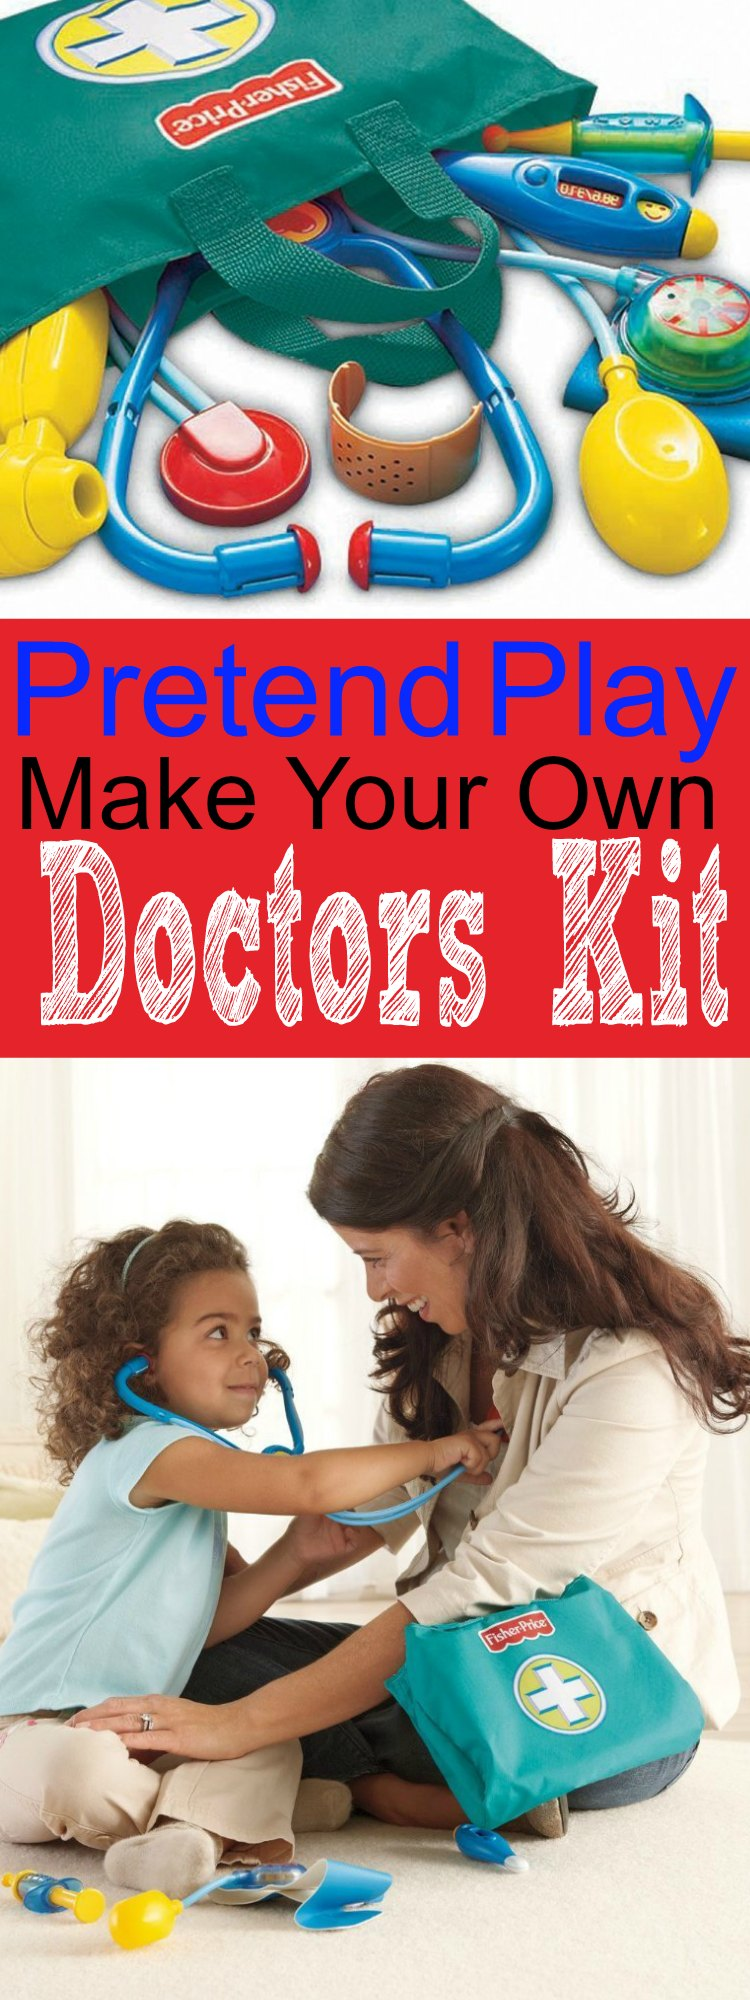 Make Your Own Doctors Kit for Kids